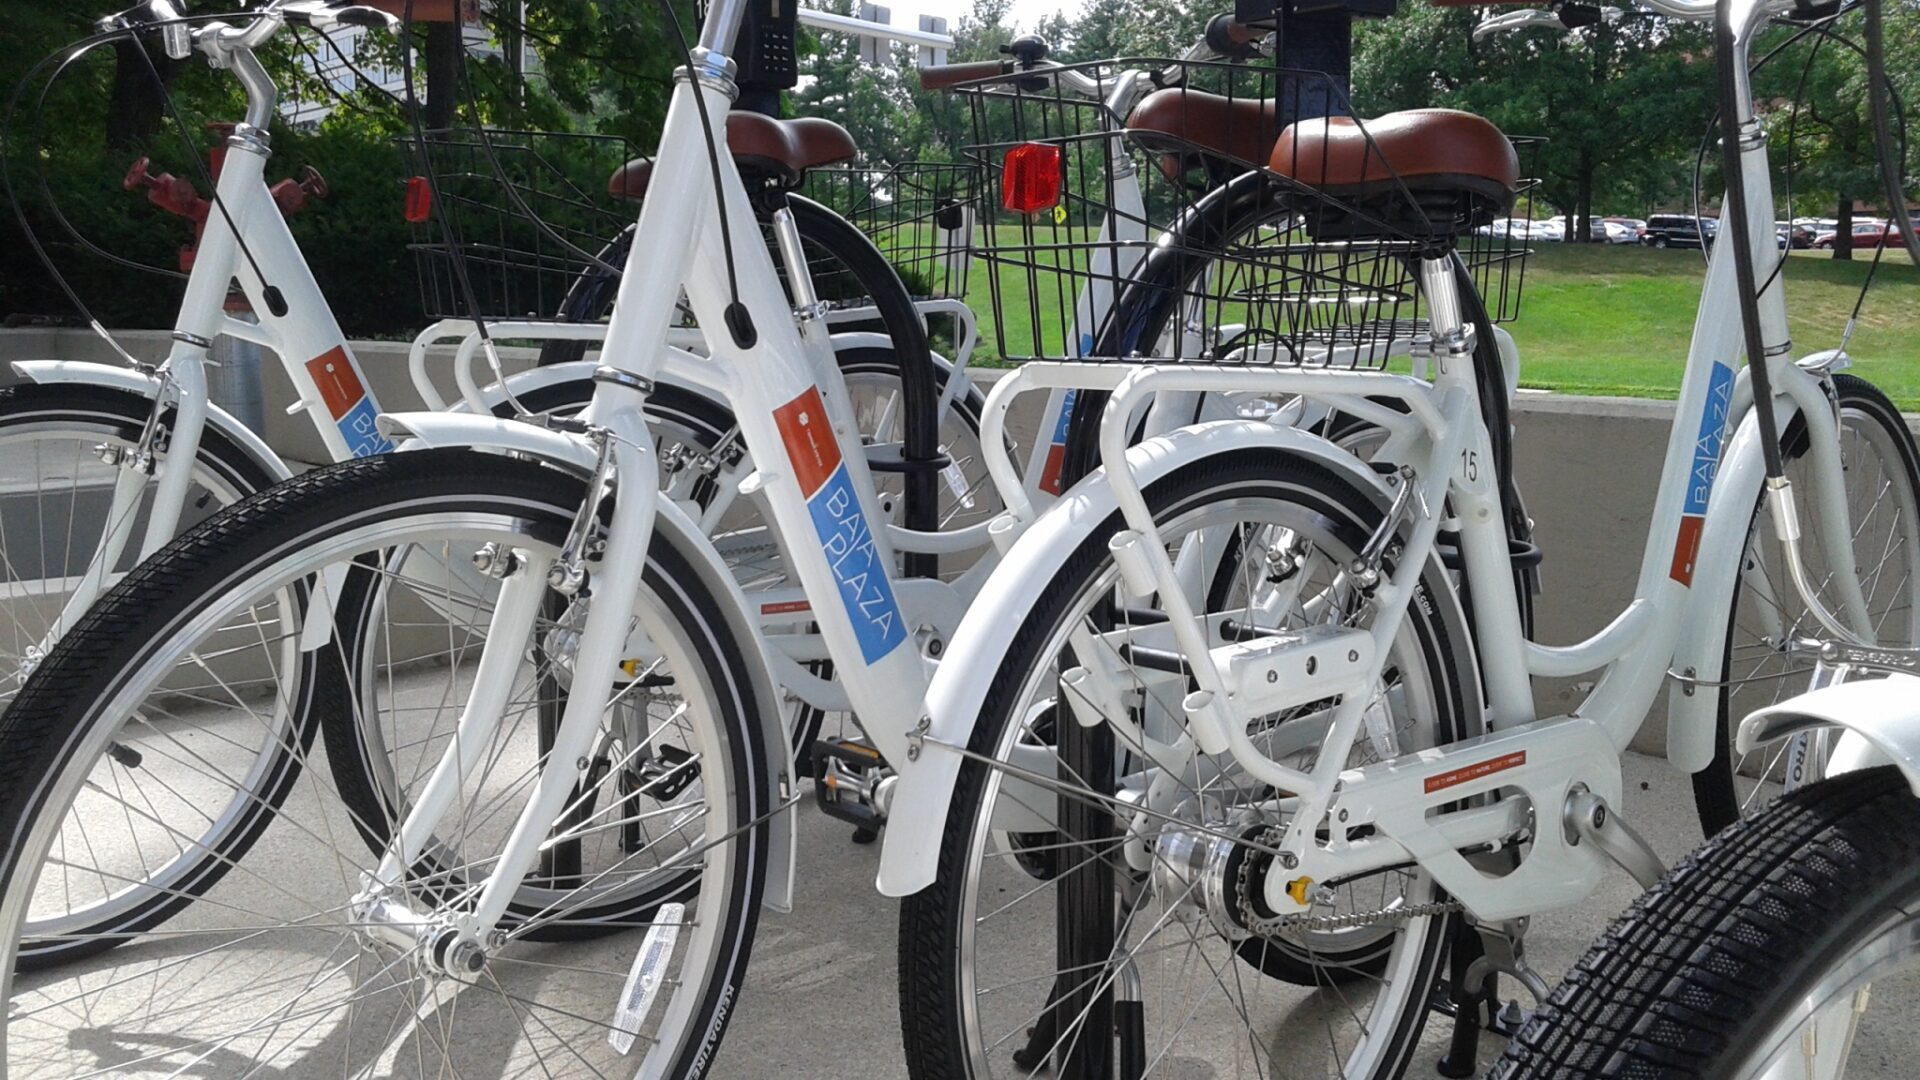 A close up shot of branded bicycles